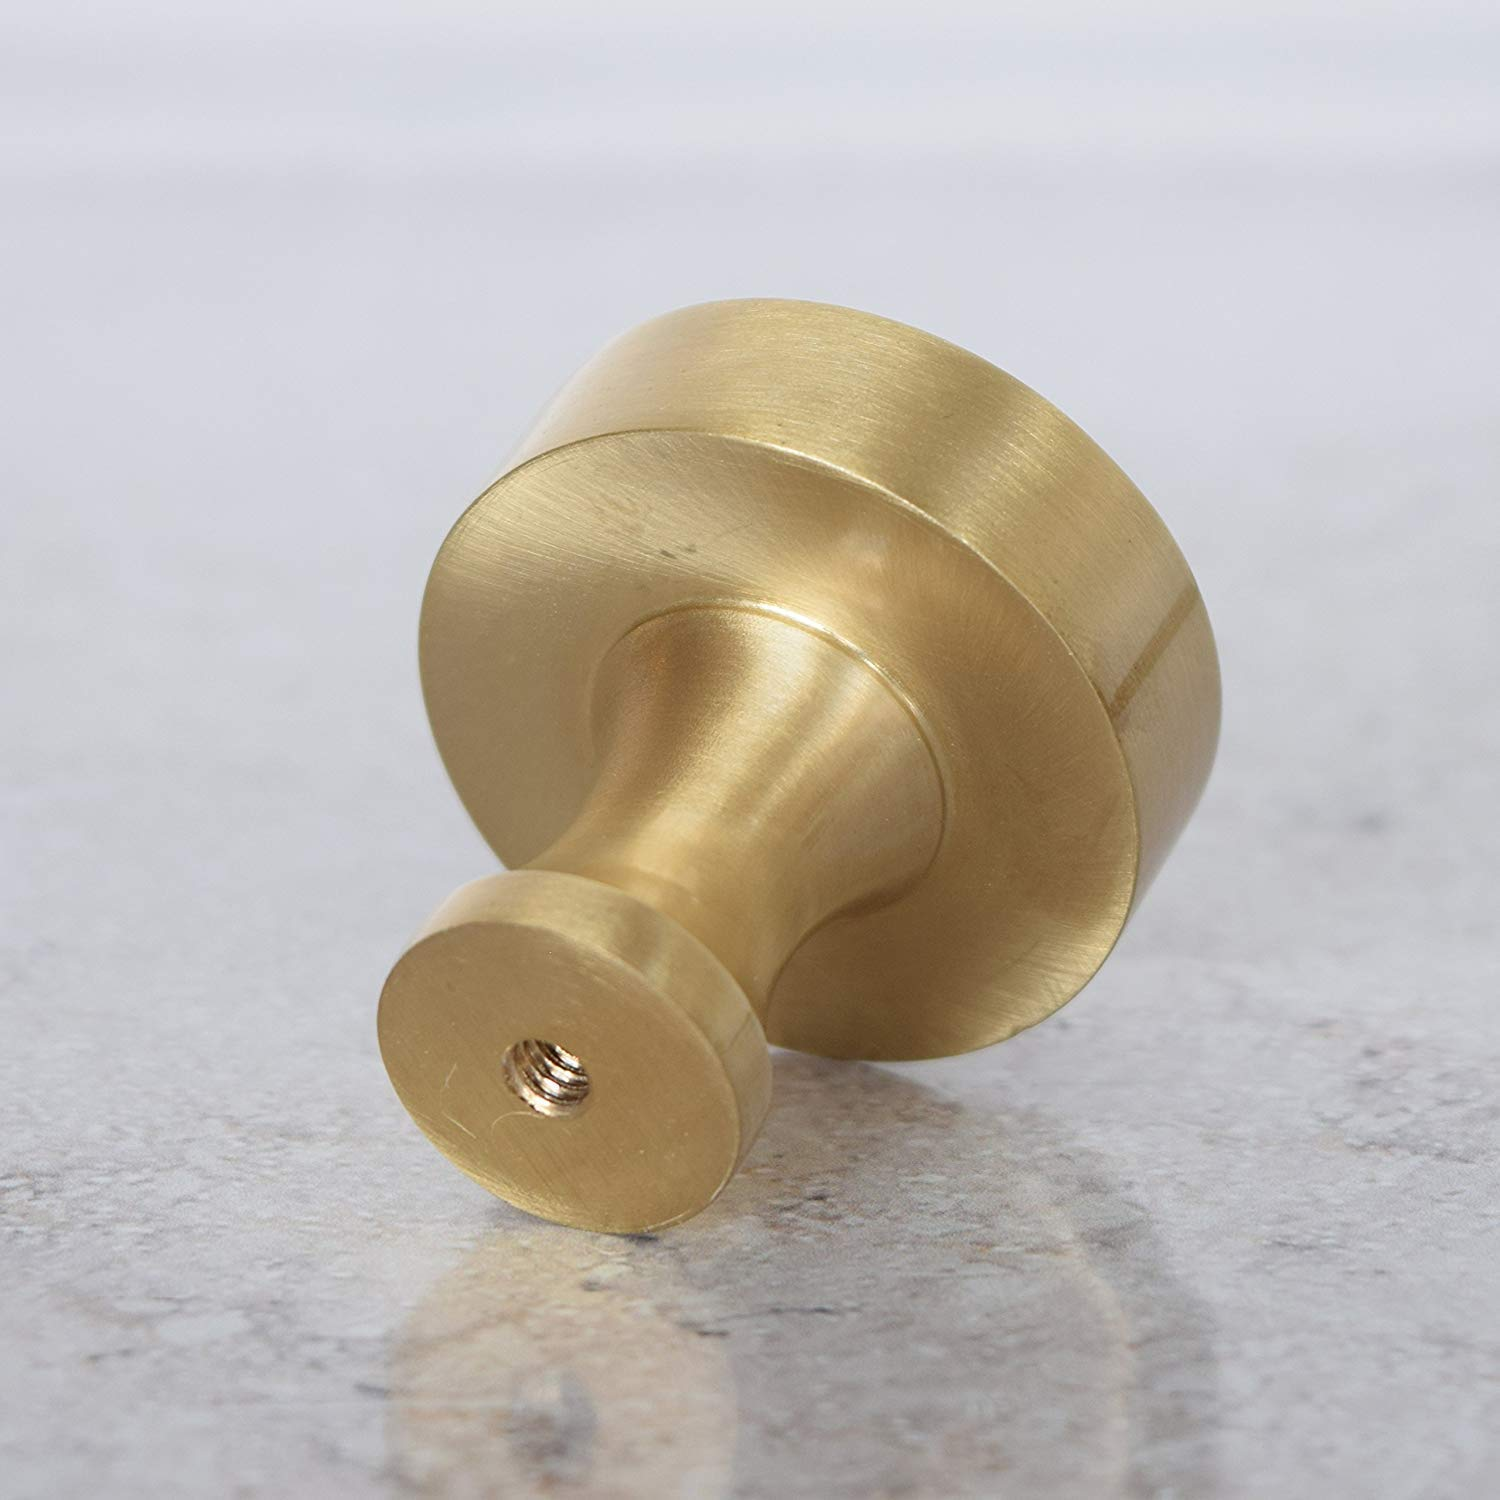 Pushka Home A Pair of Modern Contemporary Solid Brushed Brass Round Gold Cupboard Drawer Cabinet Door Knob Pull